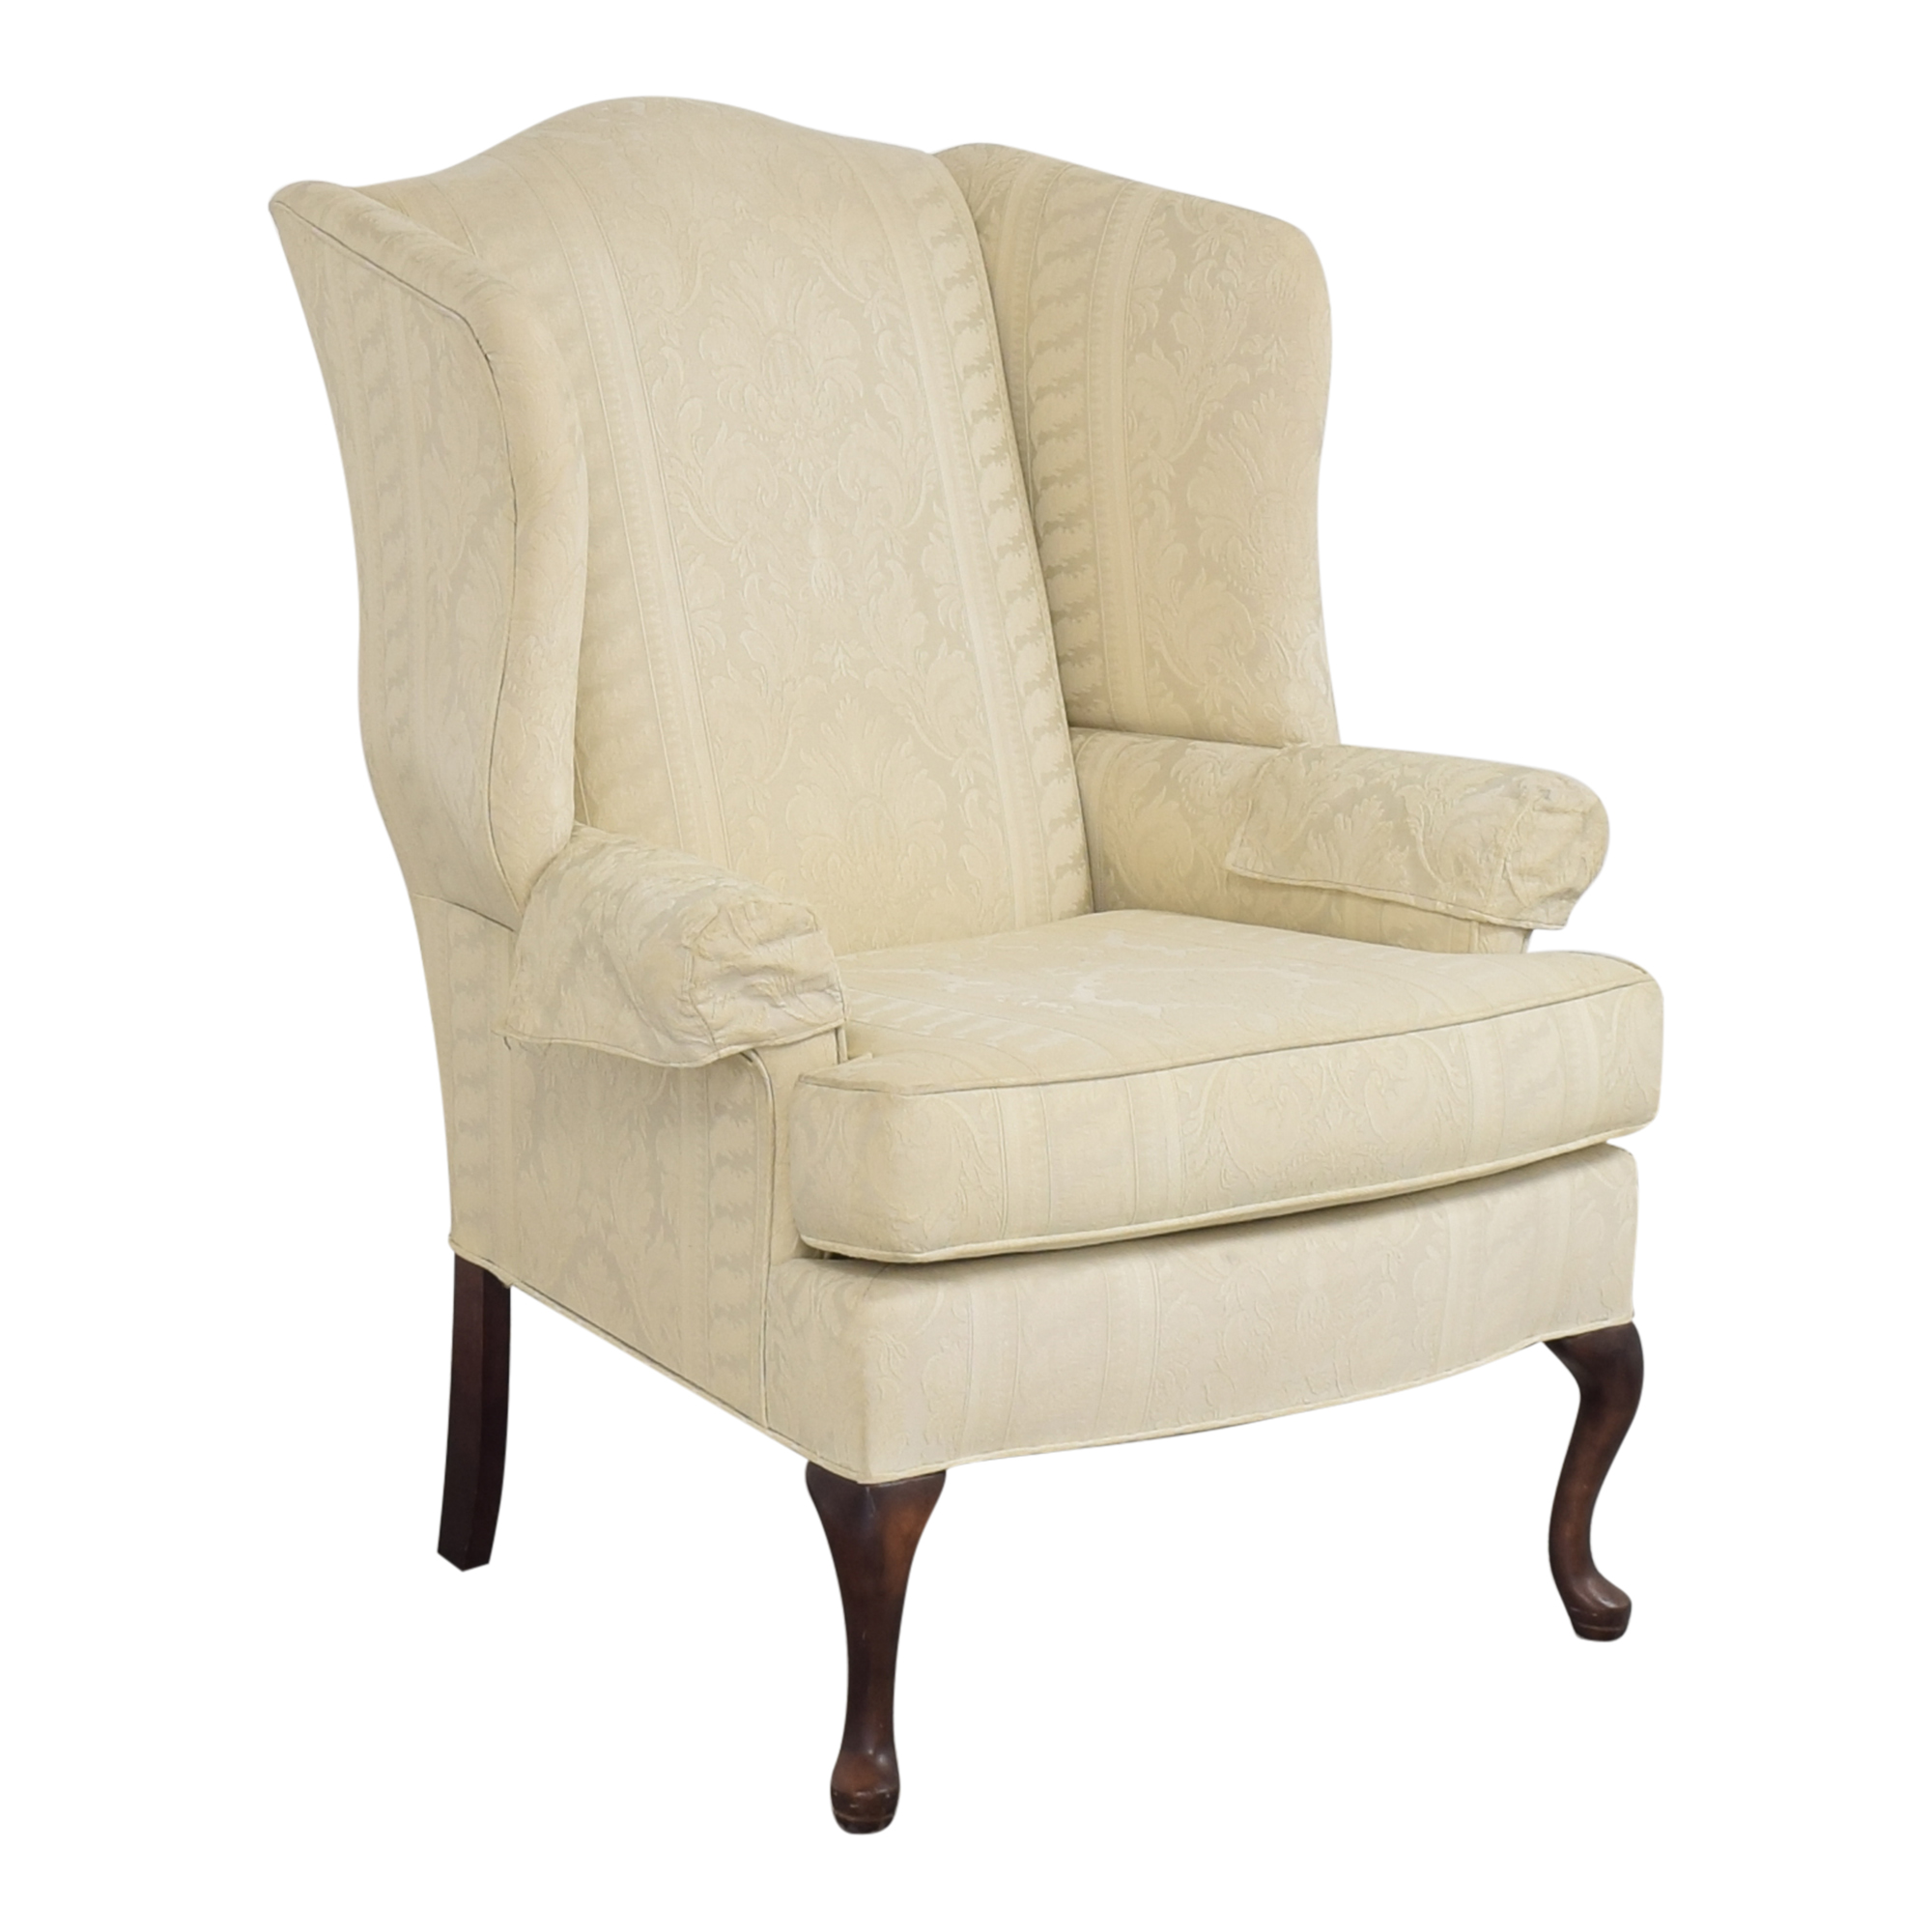 Hamilton House Wing Accent Chair  / Accent Chairs